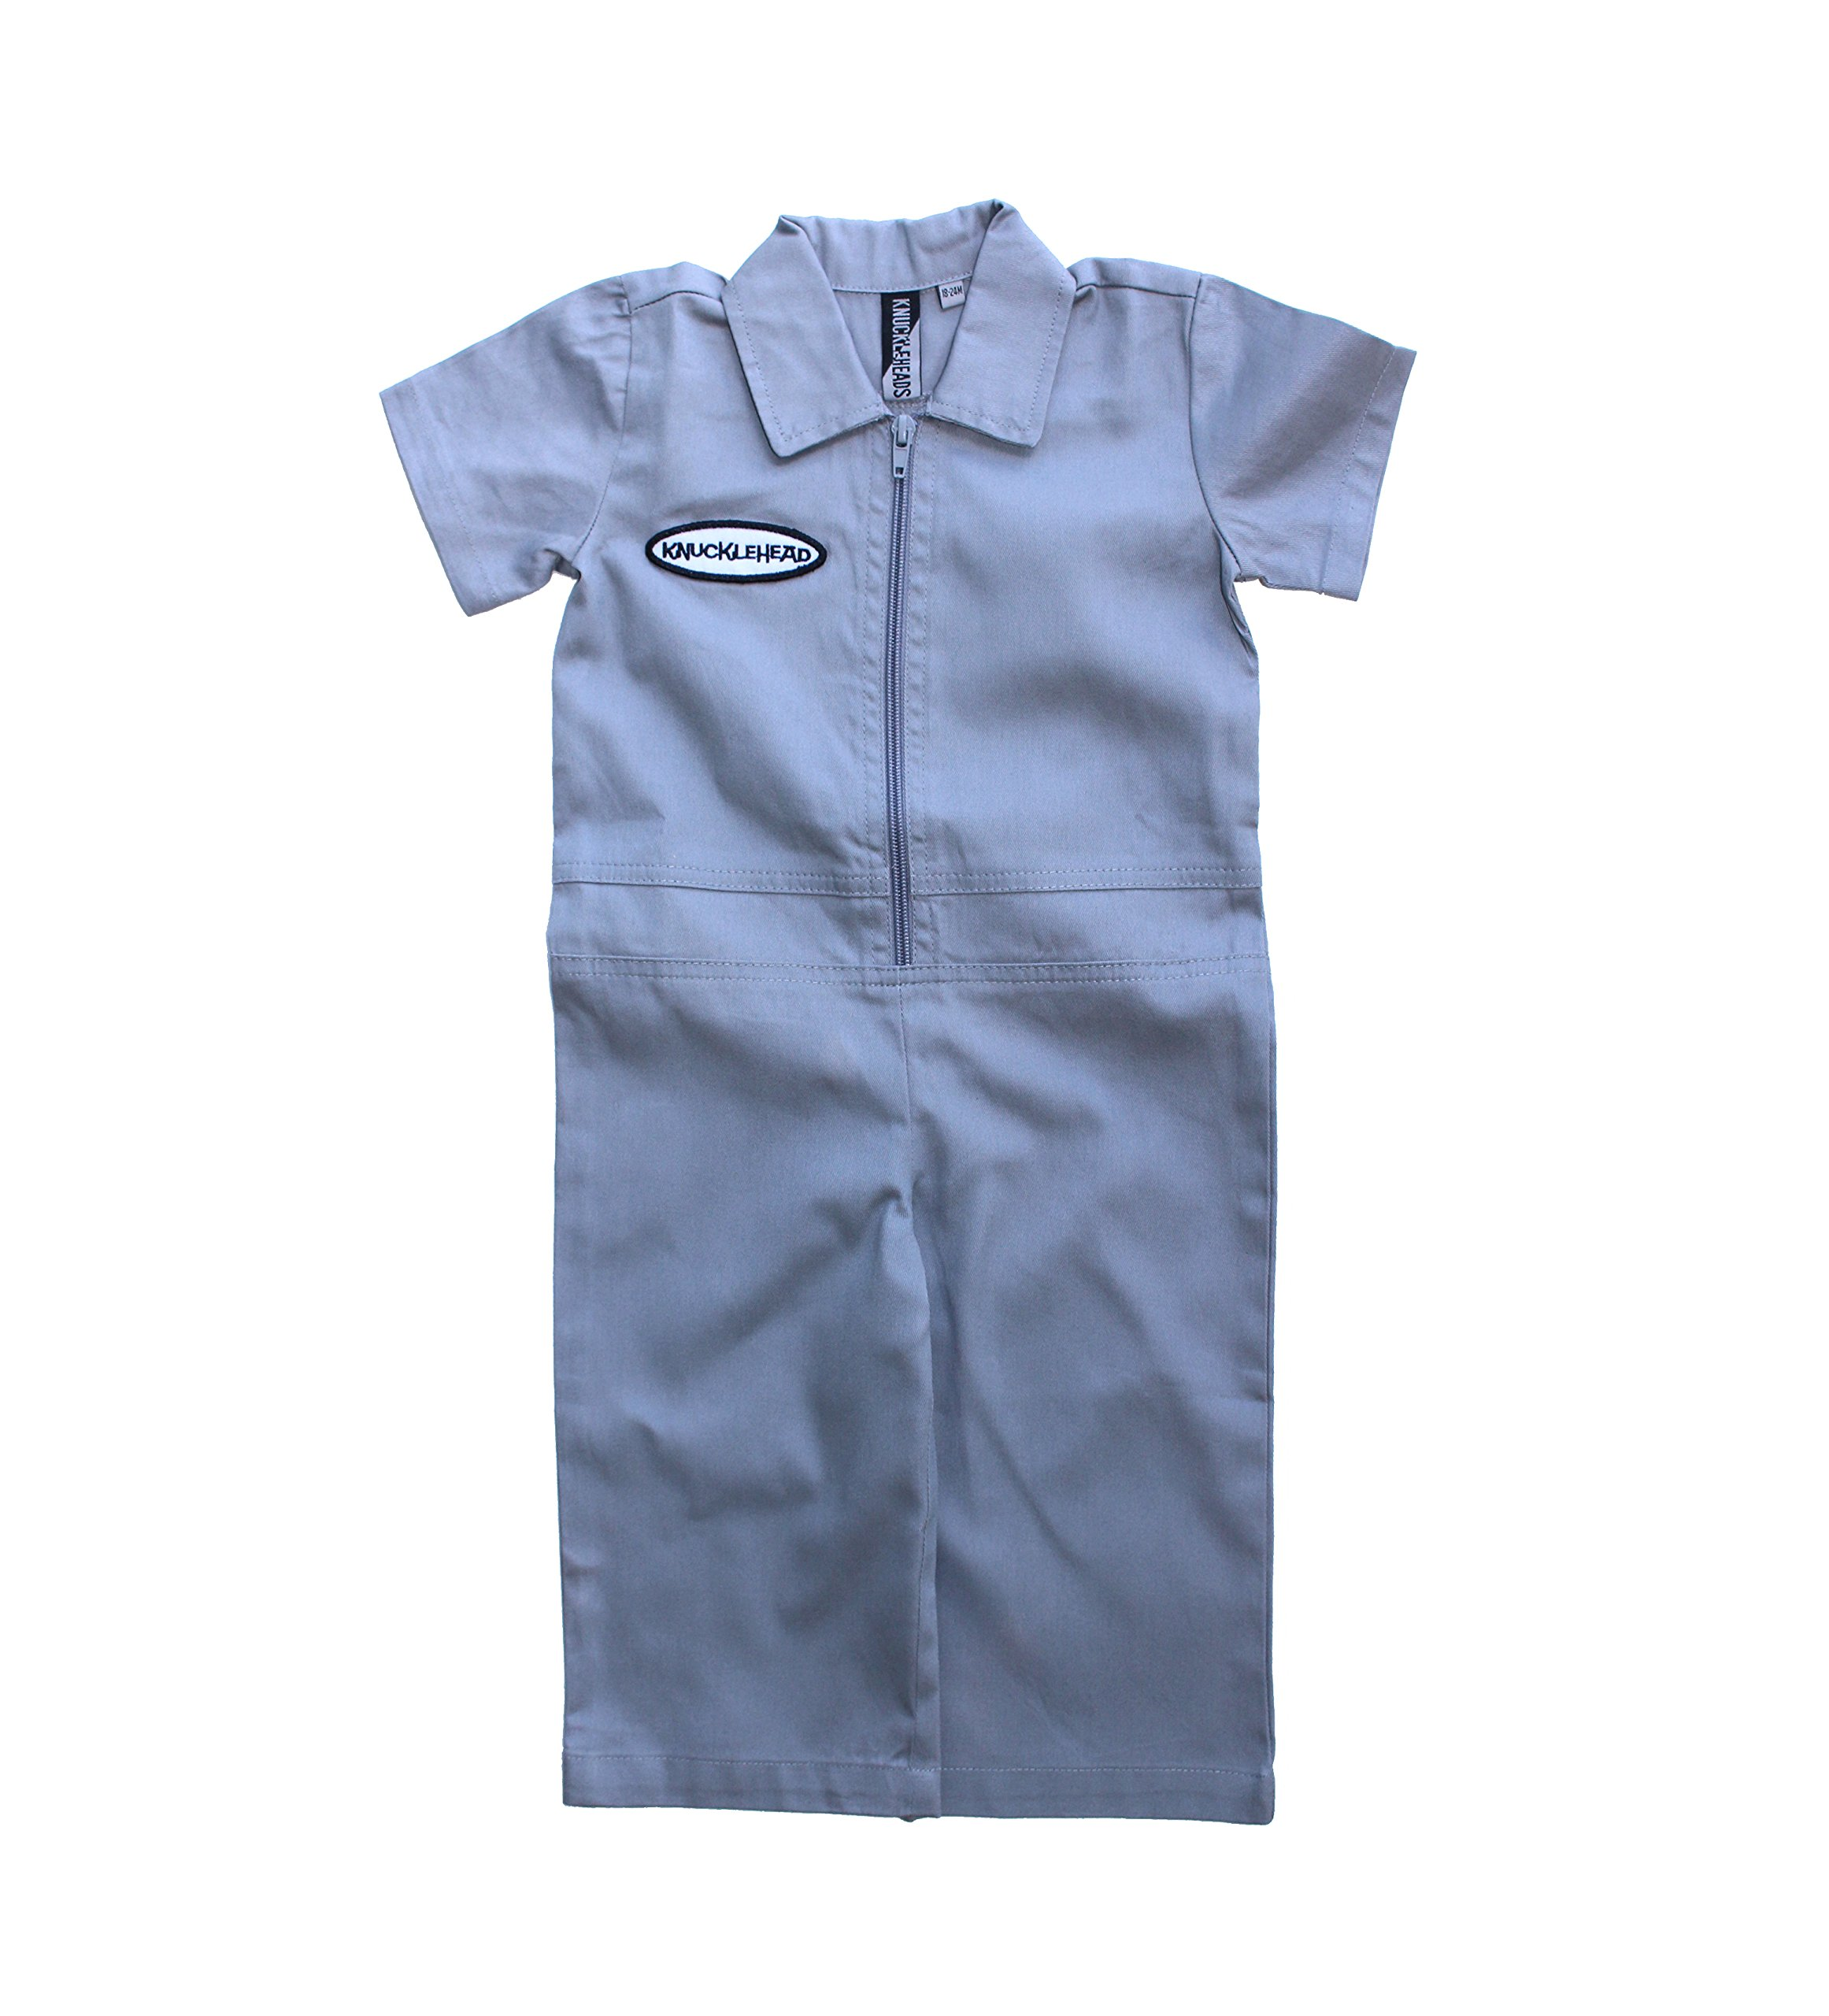 Born to Love Knuckleheads - Infant and Baby Boy Grease Monkey Coveralls (2T, Grey)